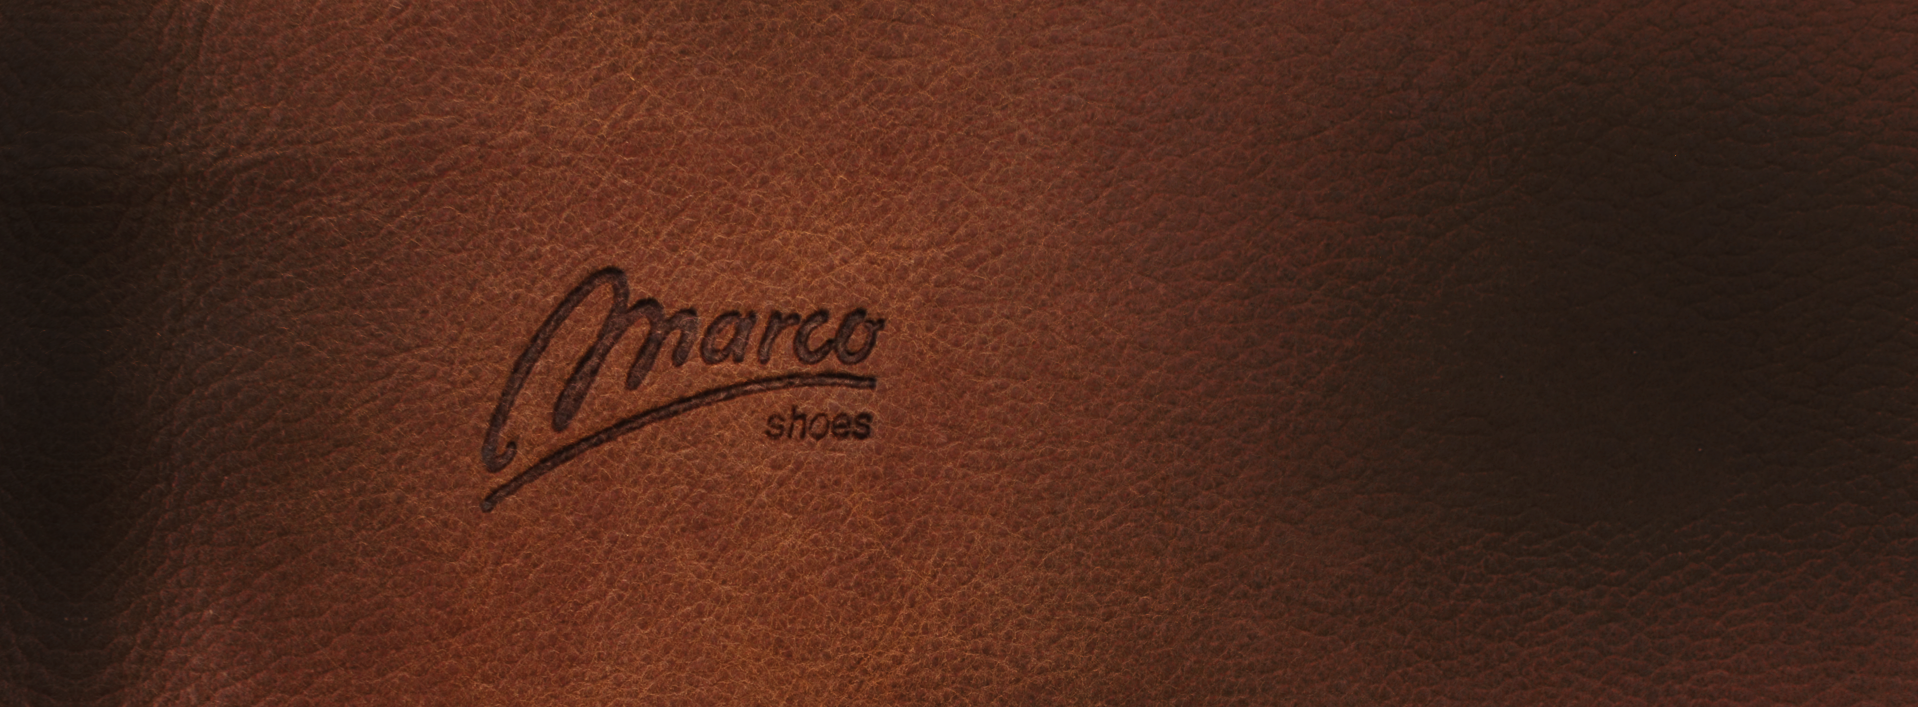 marco shoes leather logo